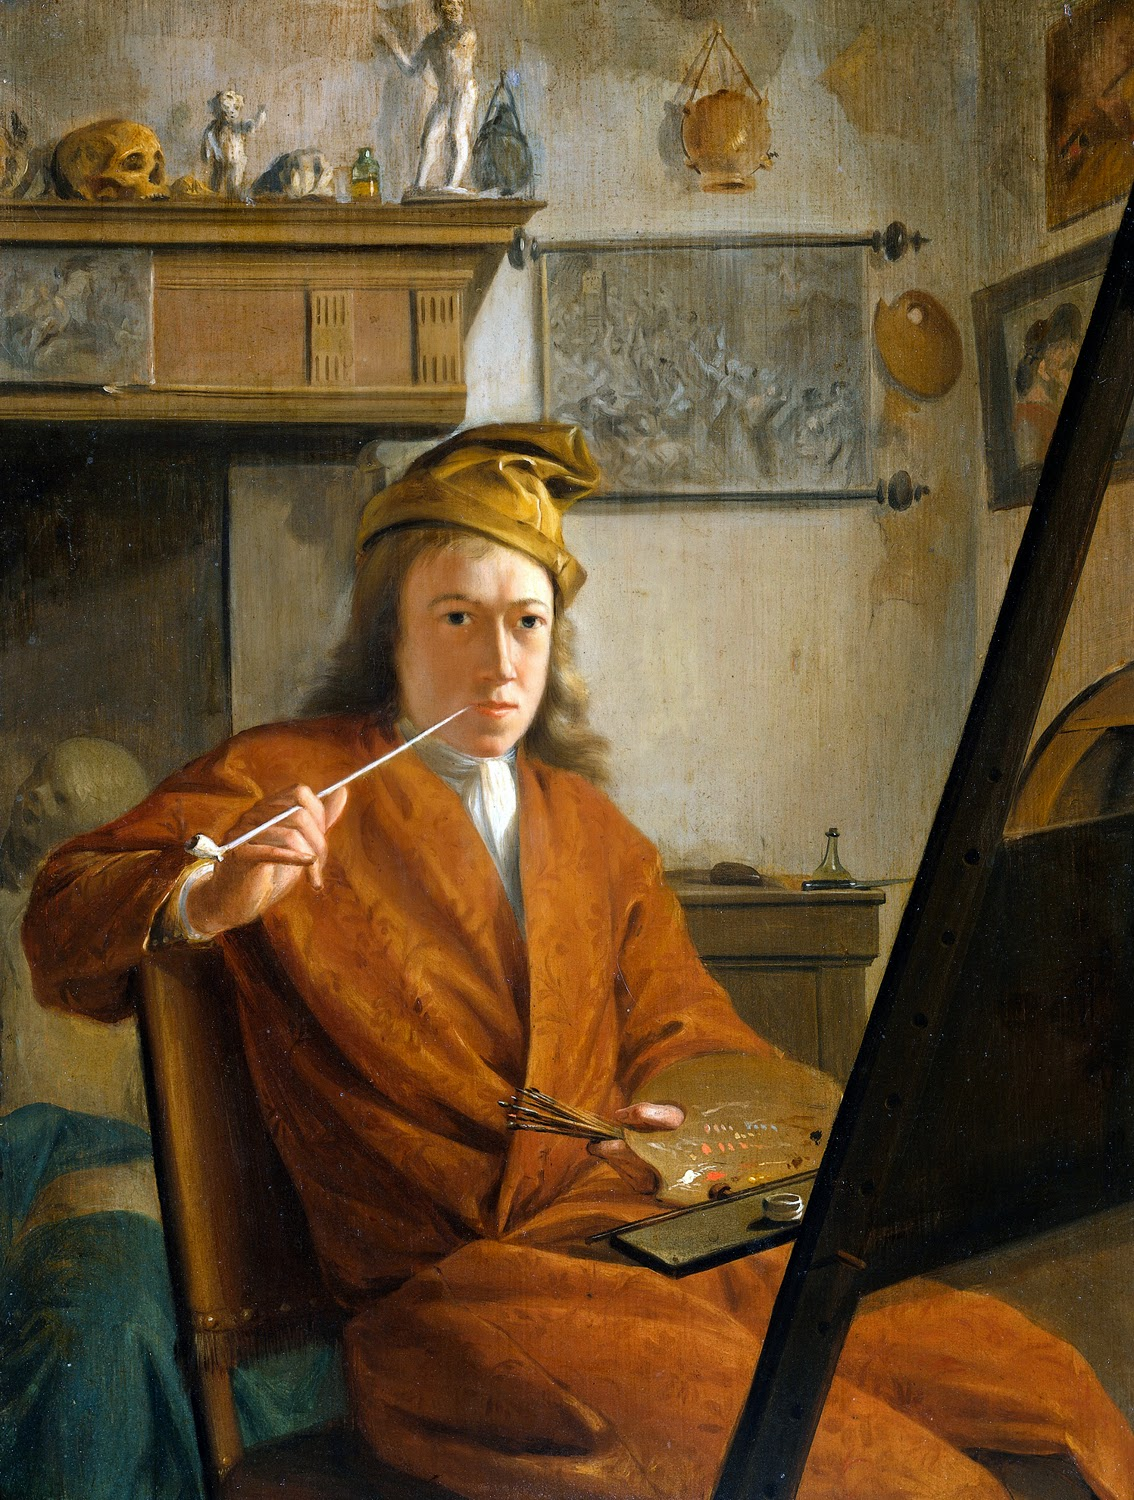 Aert Schouman, Self Portait, Portrait of Painters